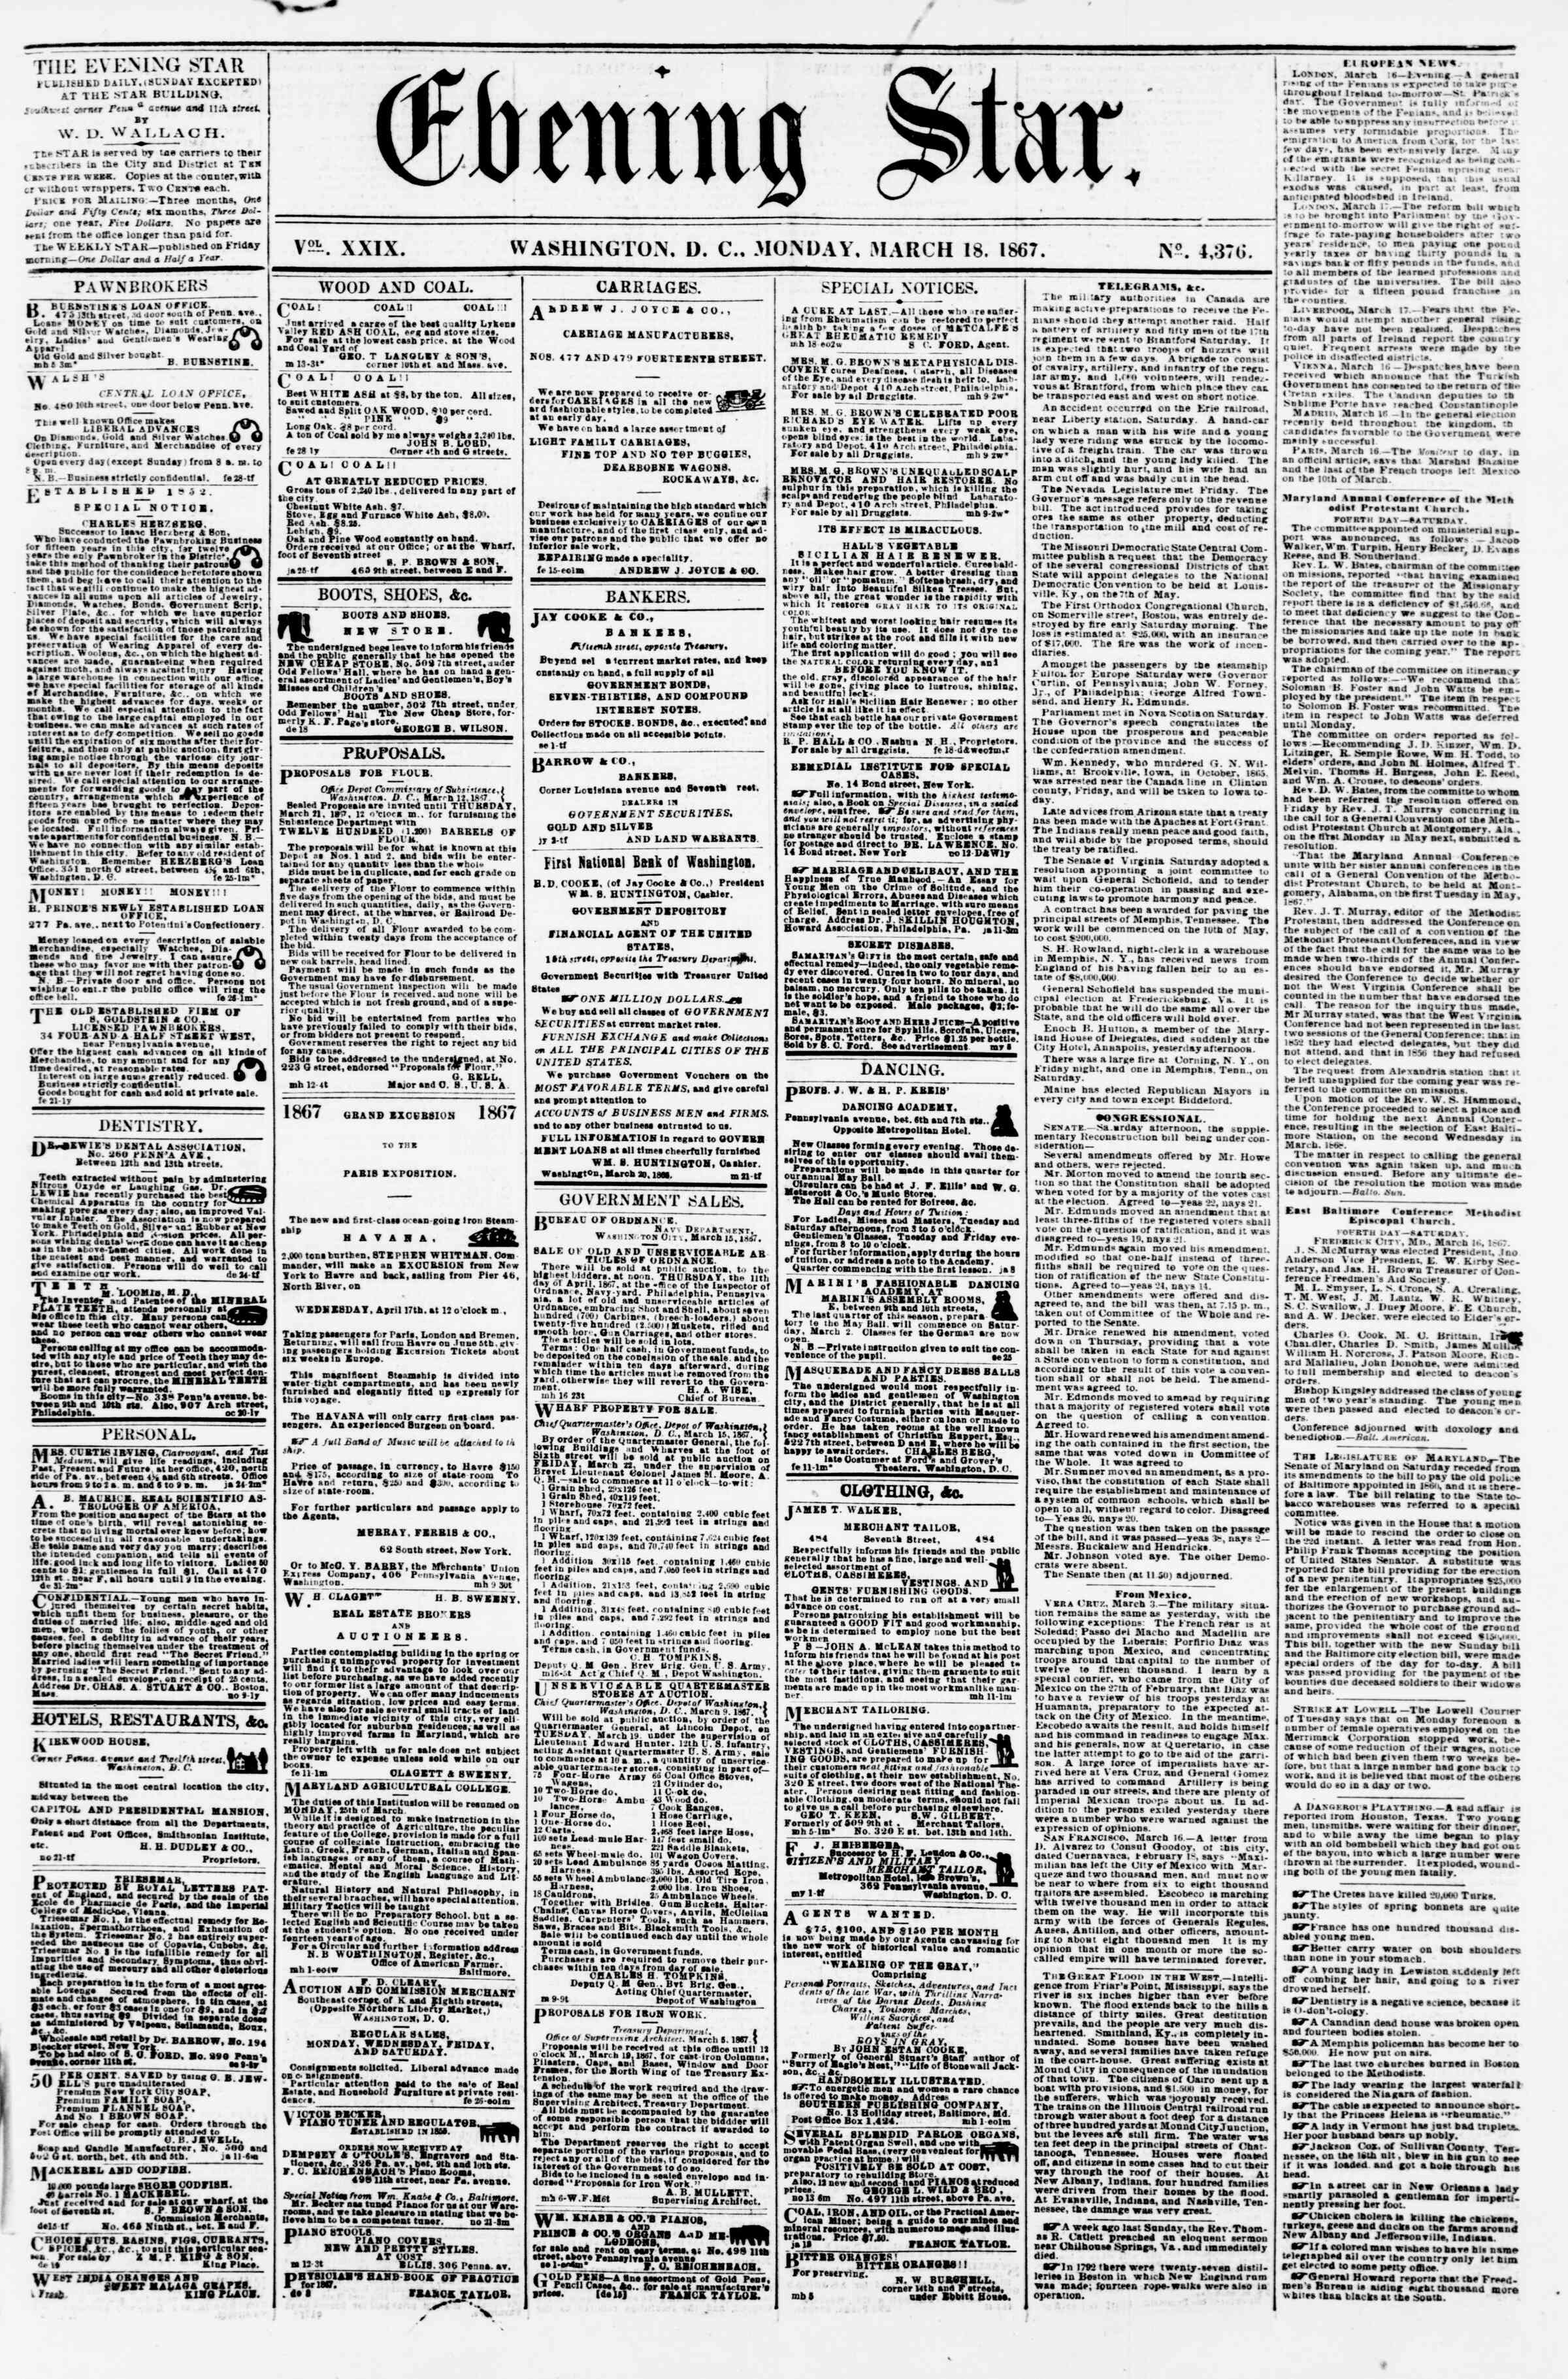 Newspaper of Evening Star dated March 18, 1867 Page 1